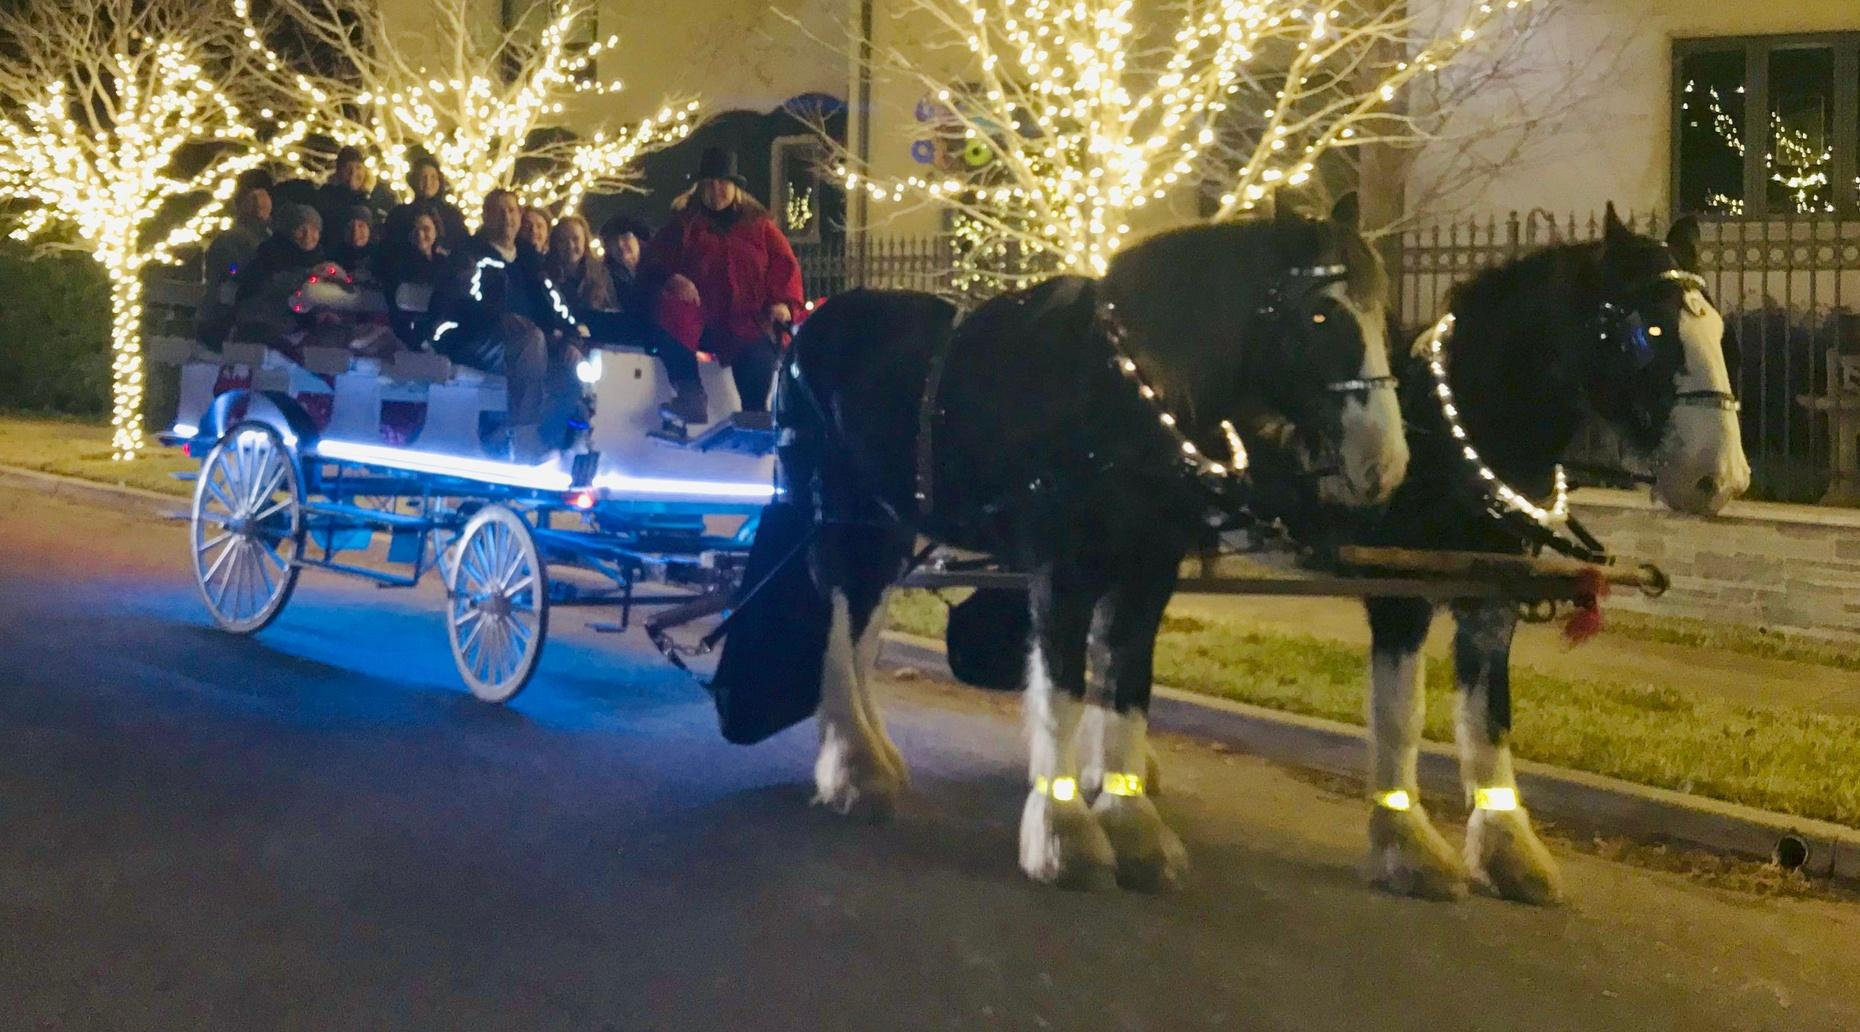 12-16 Passenger Christmas Carriage Tour in Highland Park